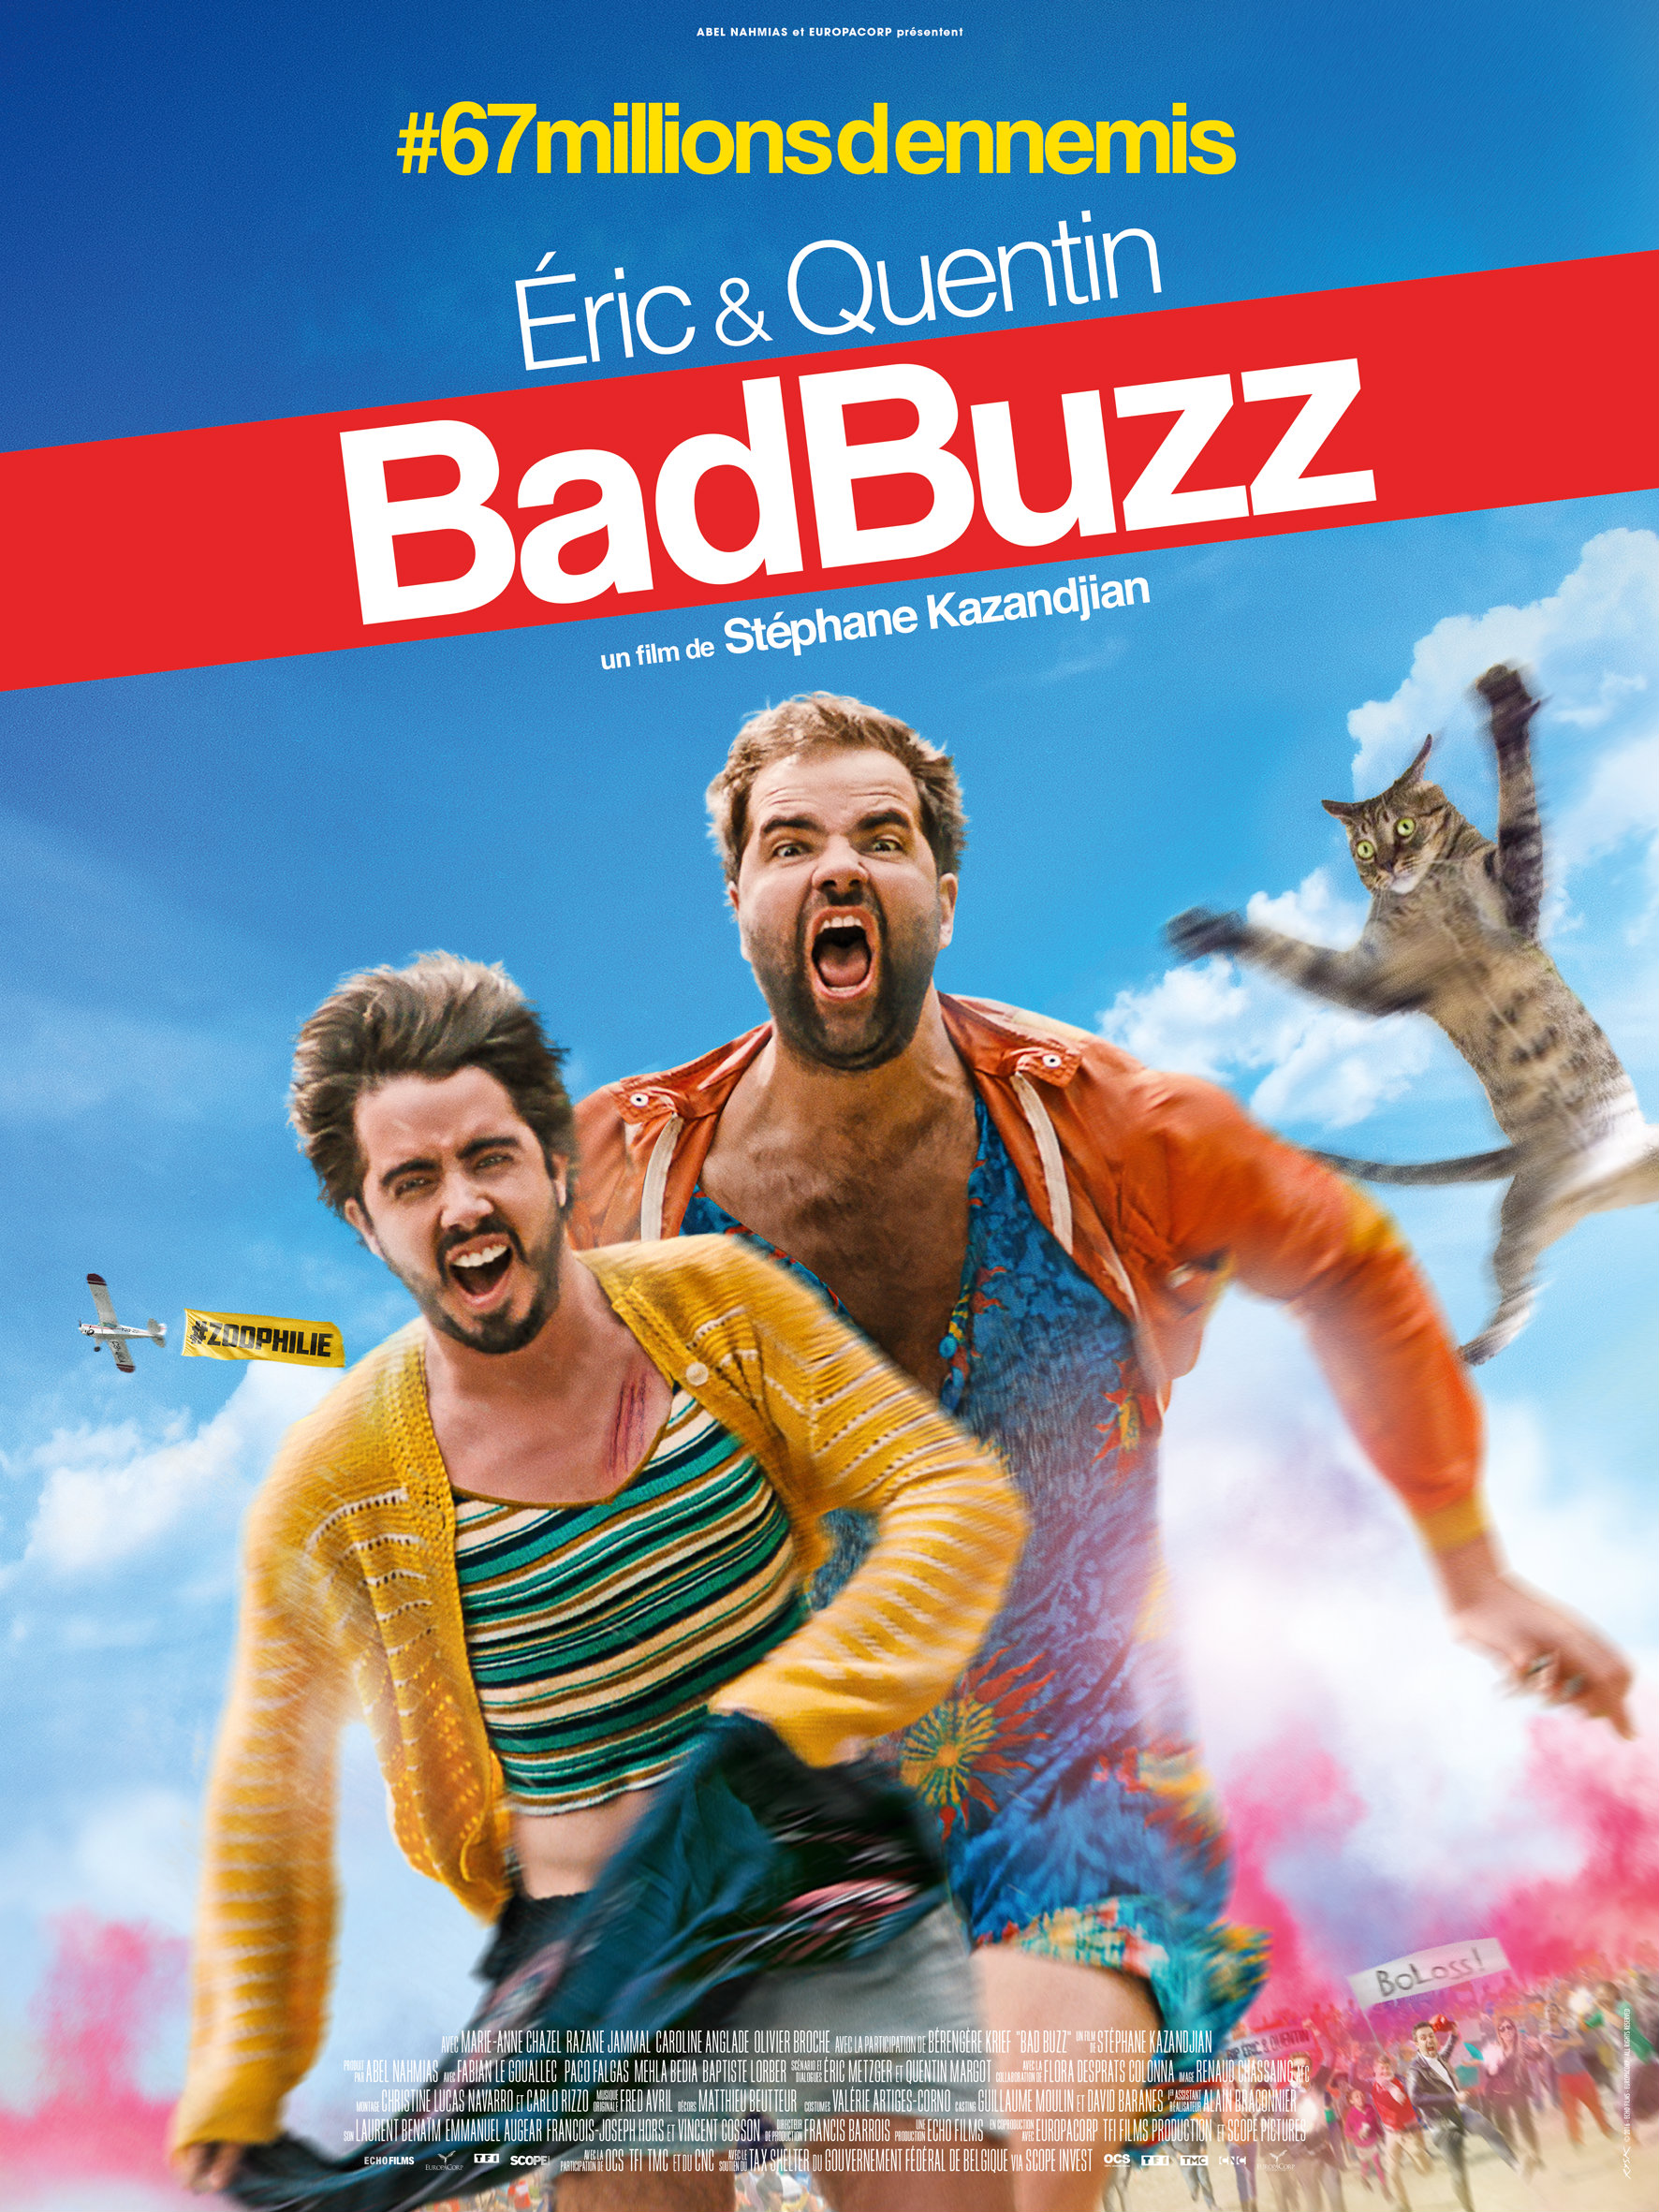 bad-buzz-laffiche-eric-et-quentin